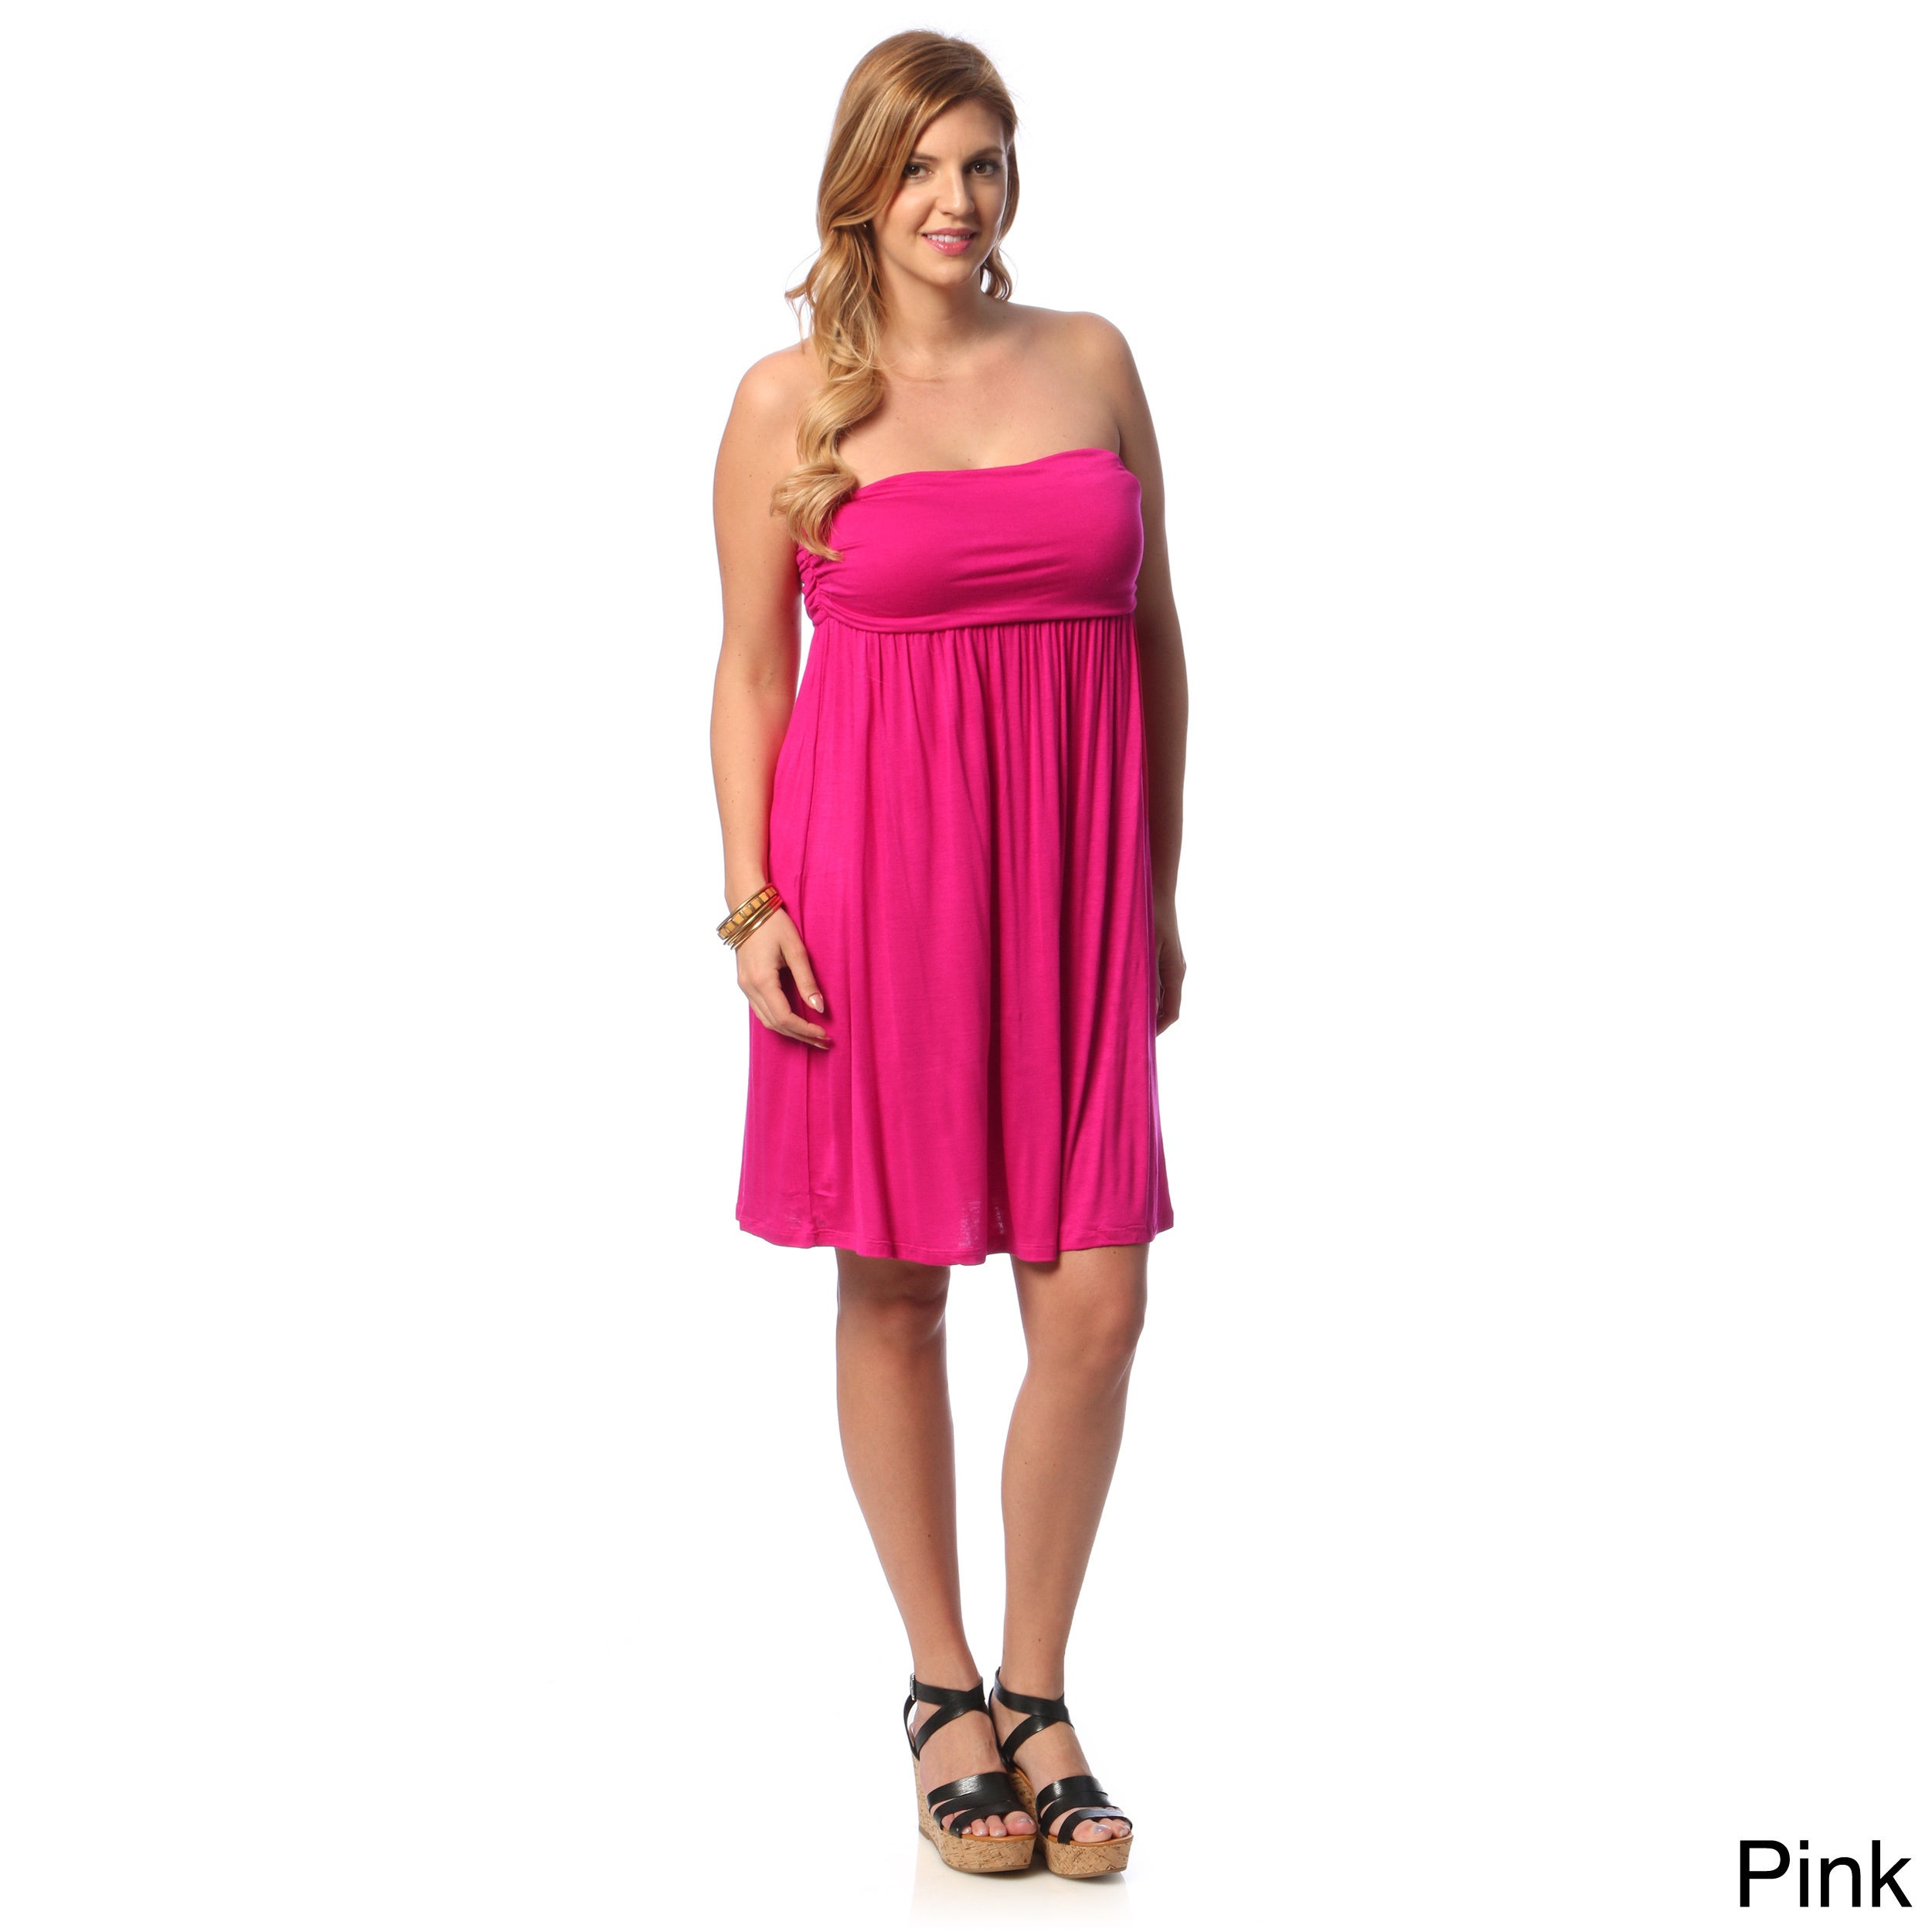 247 Comfort Apparel Womens Plus Size Sleeveless Tube Dress Free